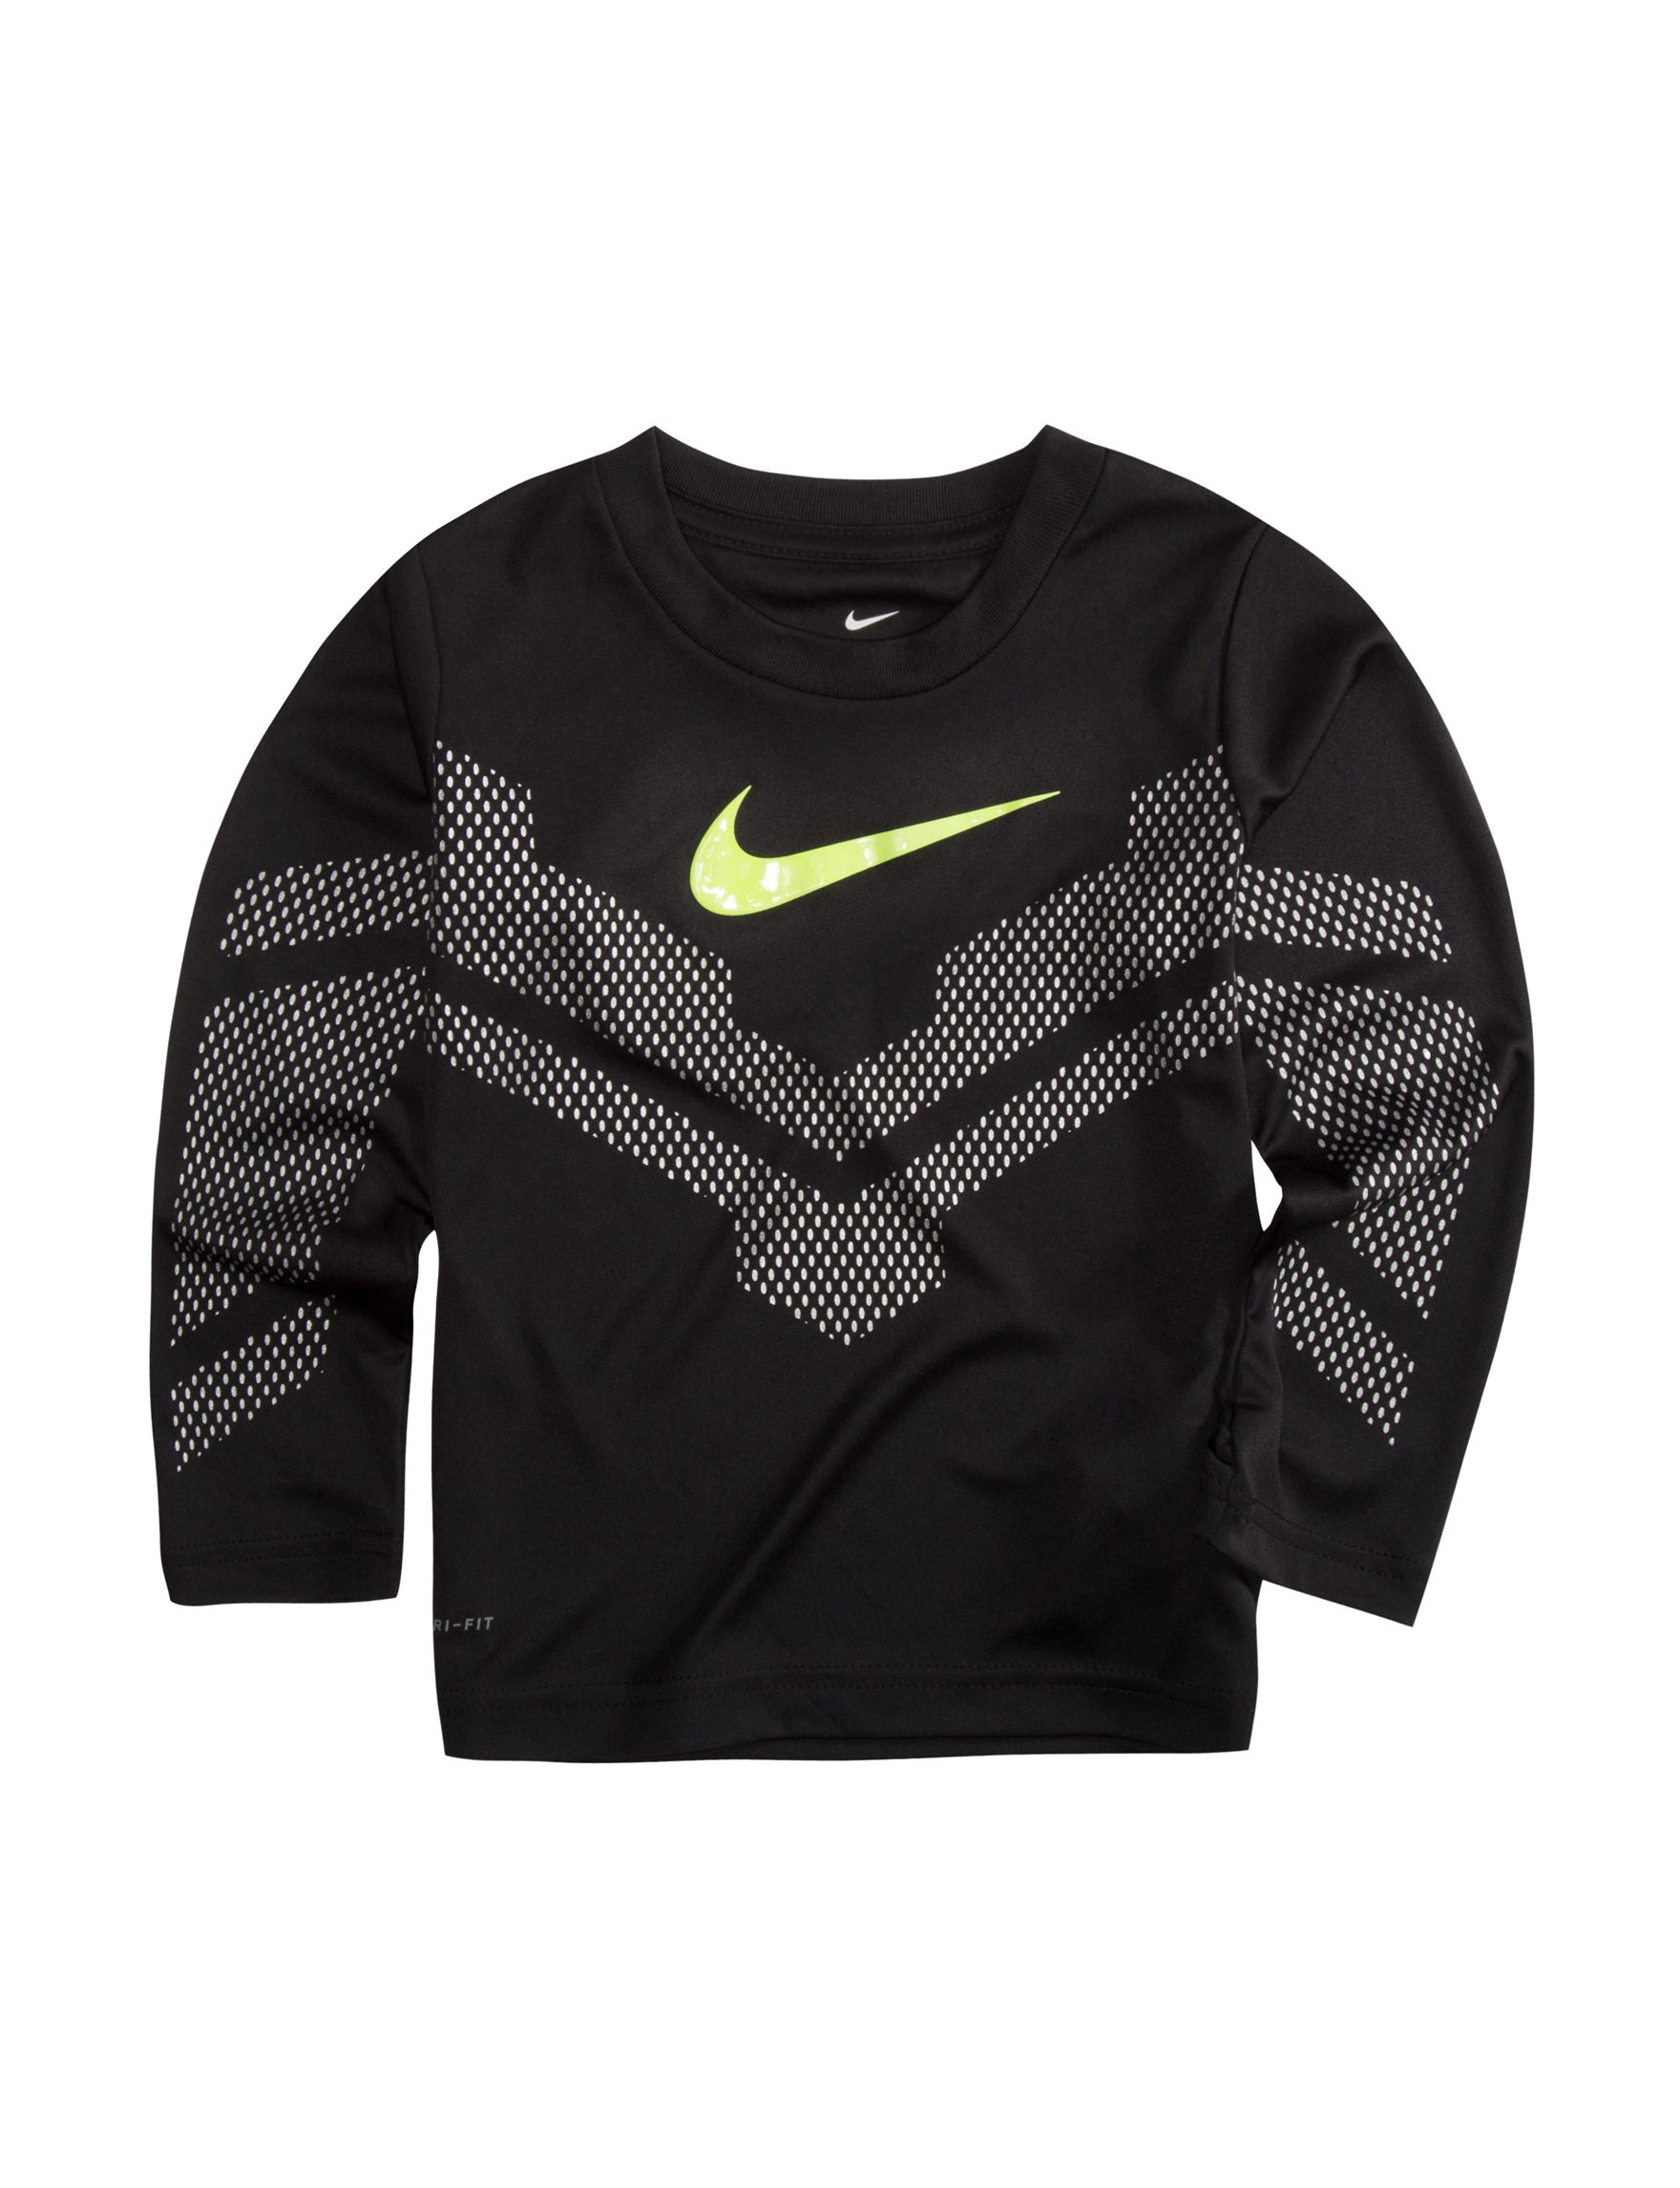 10754eeeeff4 Nike Dri-Fit Ripple T-shirt - Toddlers   Boys 4-7